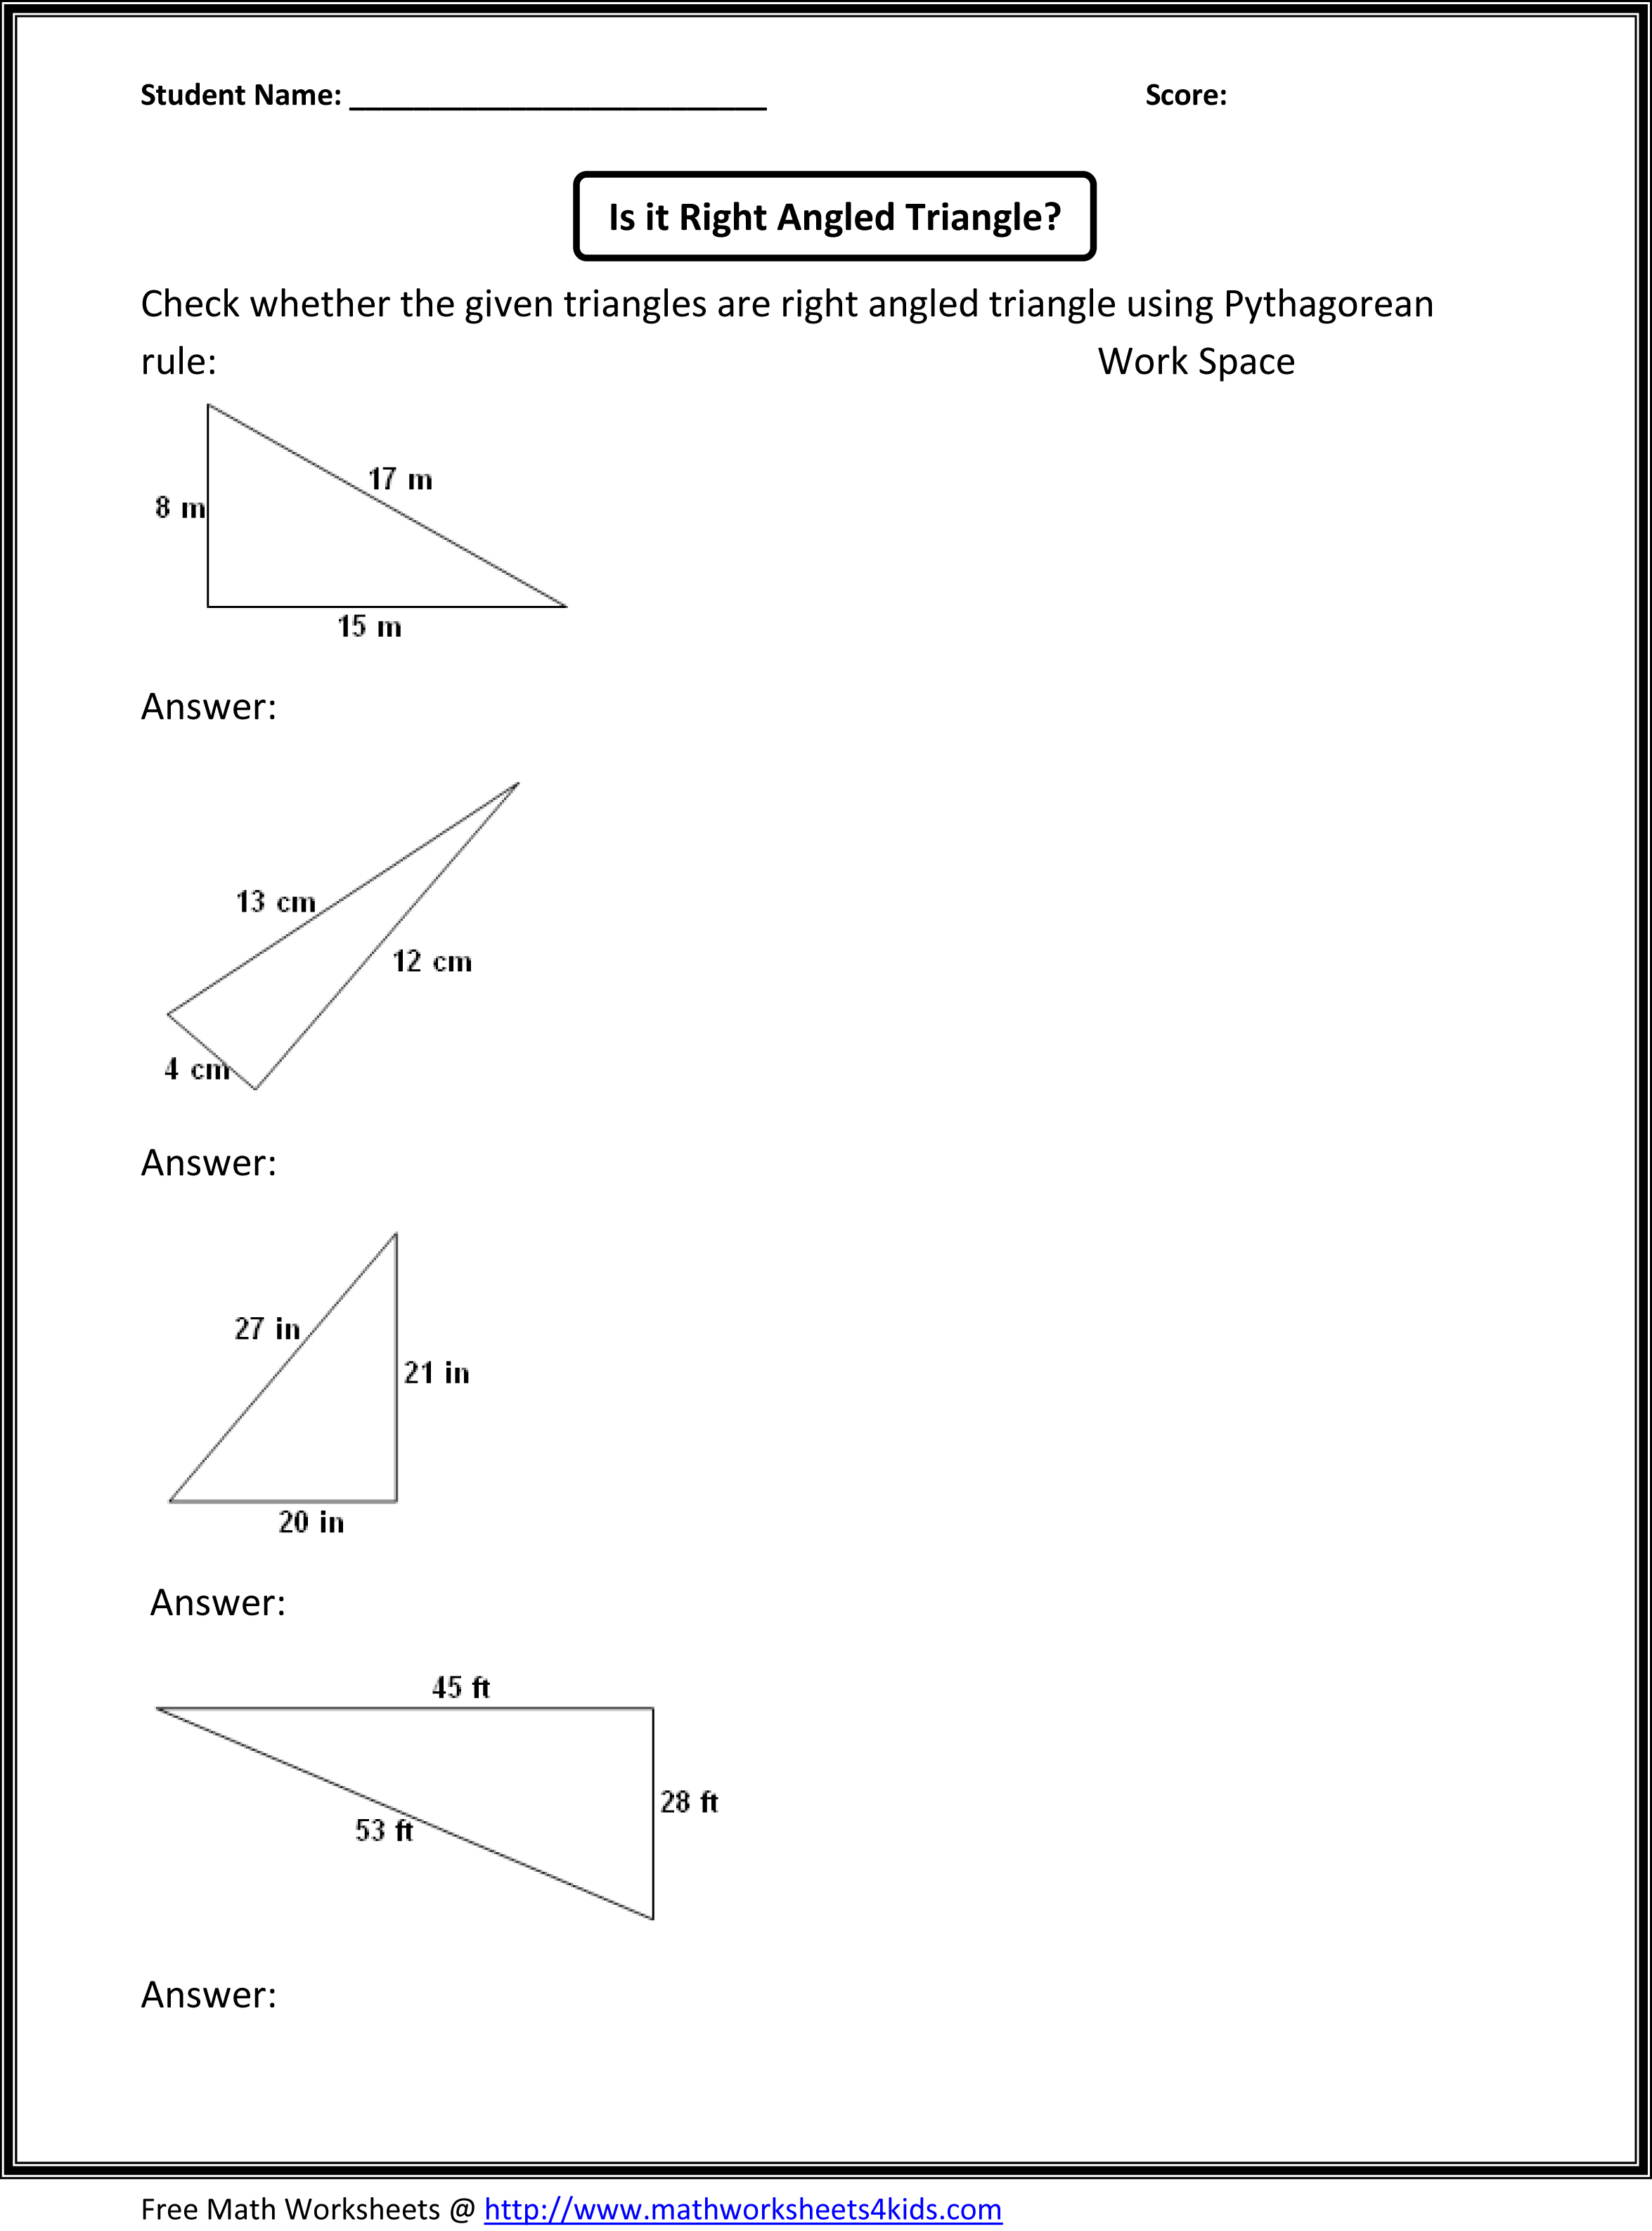 Worksheets 8th Grade Math Worksheets With Answers math worksheets for 8th graders with answers 17 best images about grade on pinterest equation